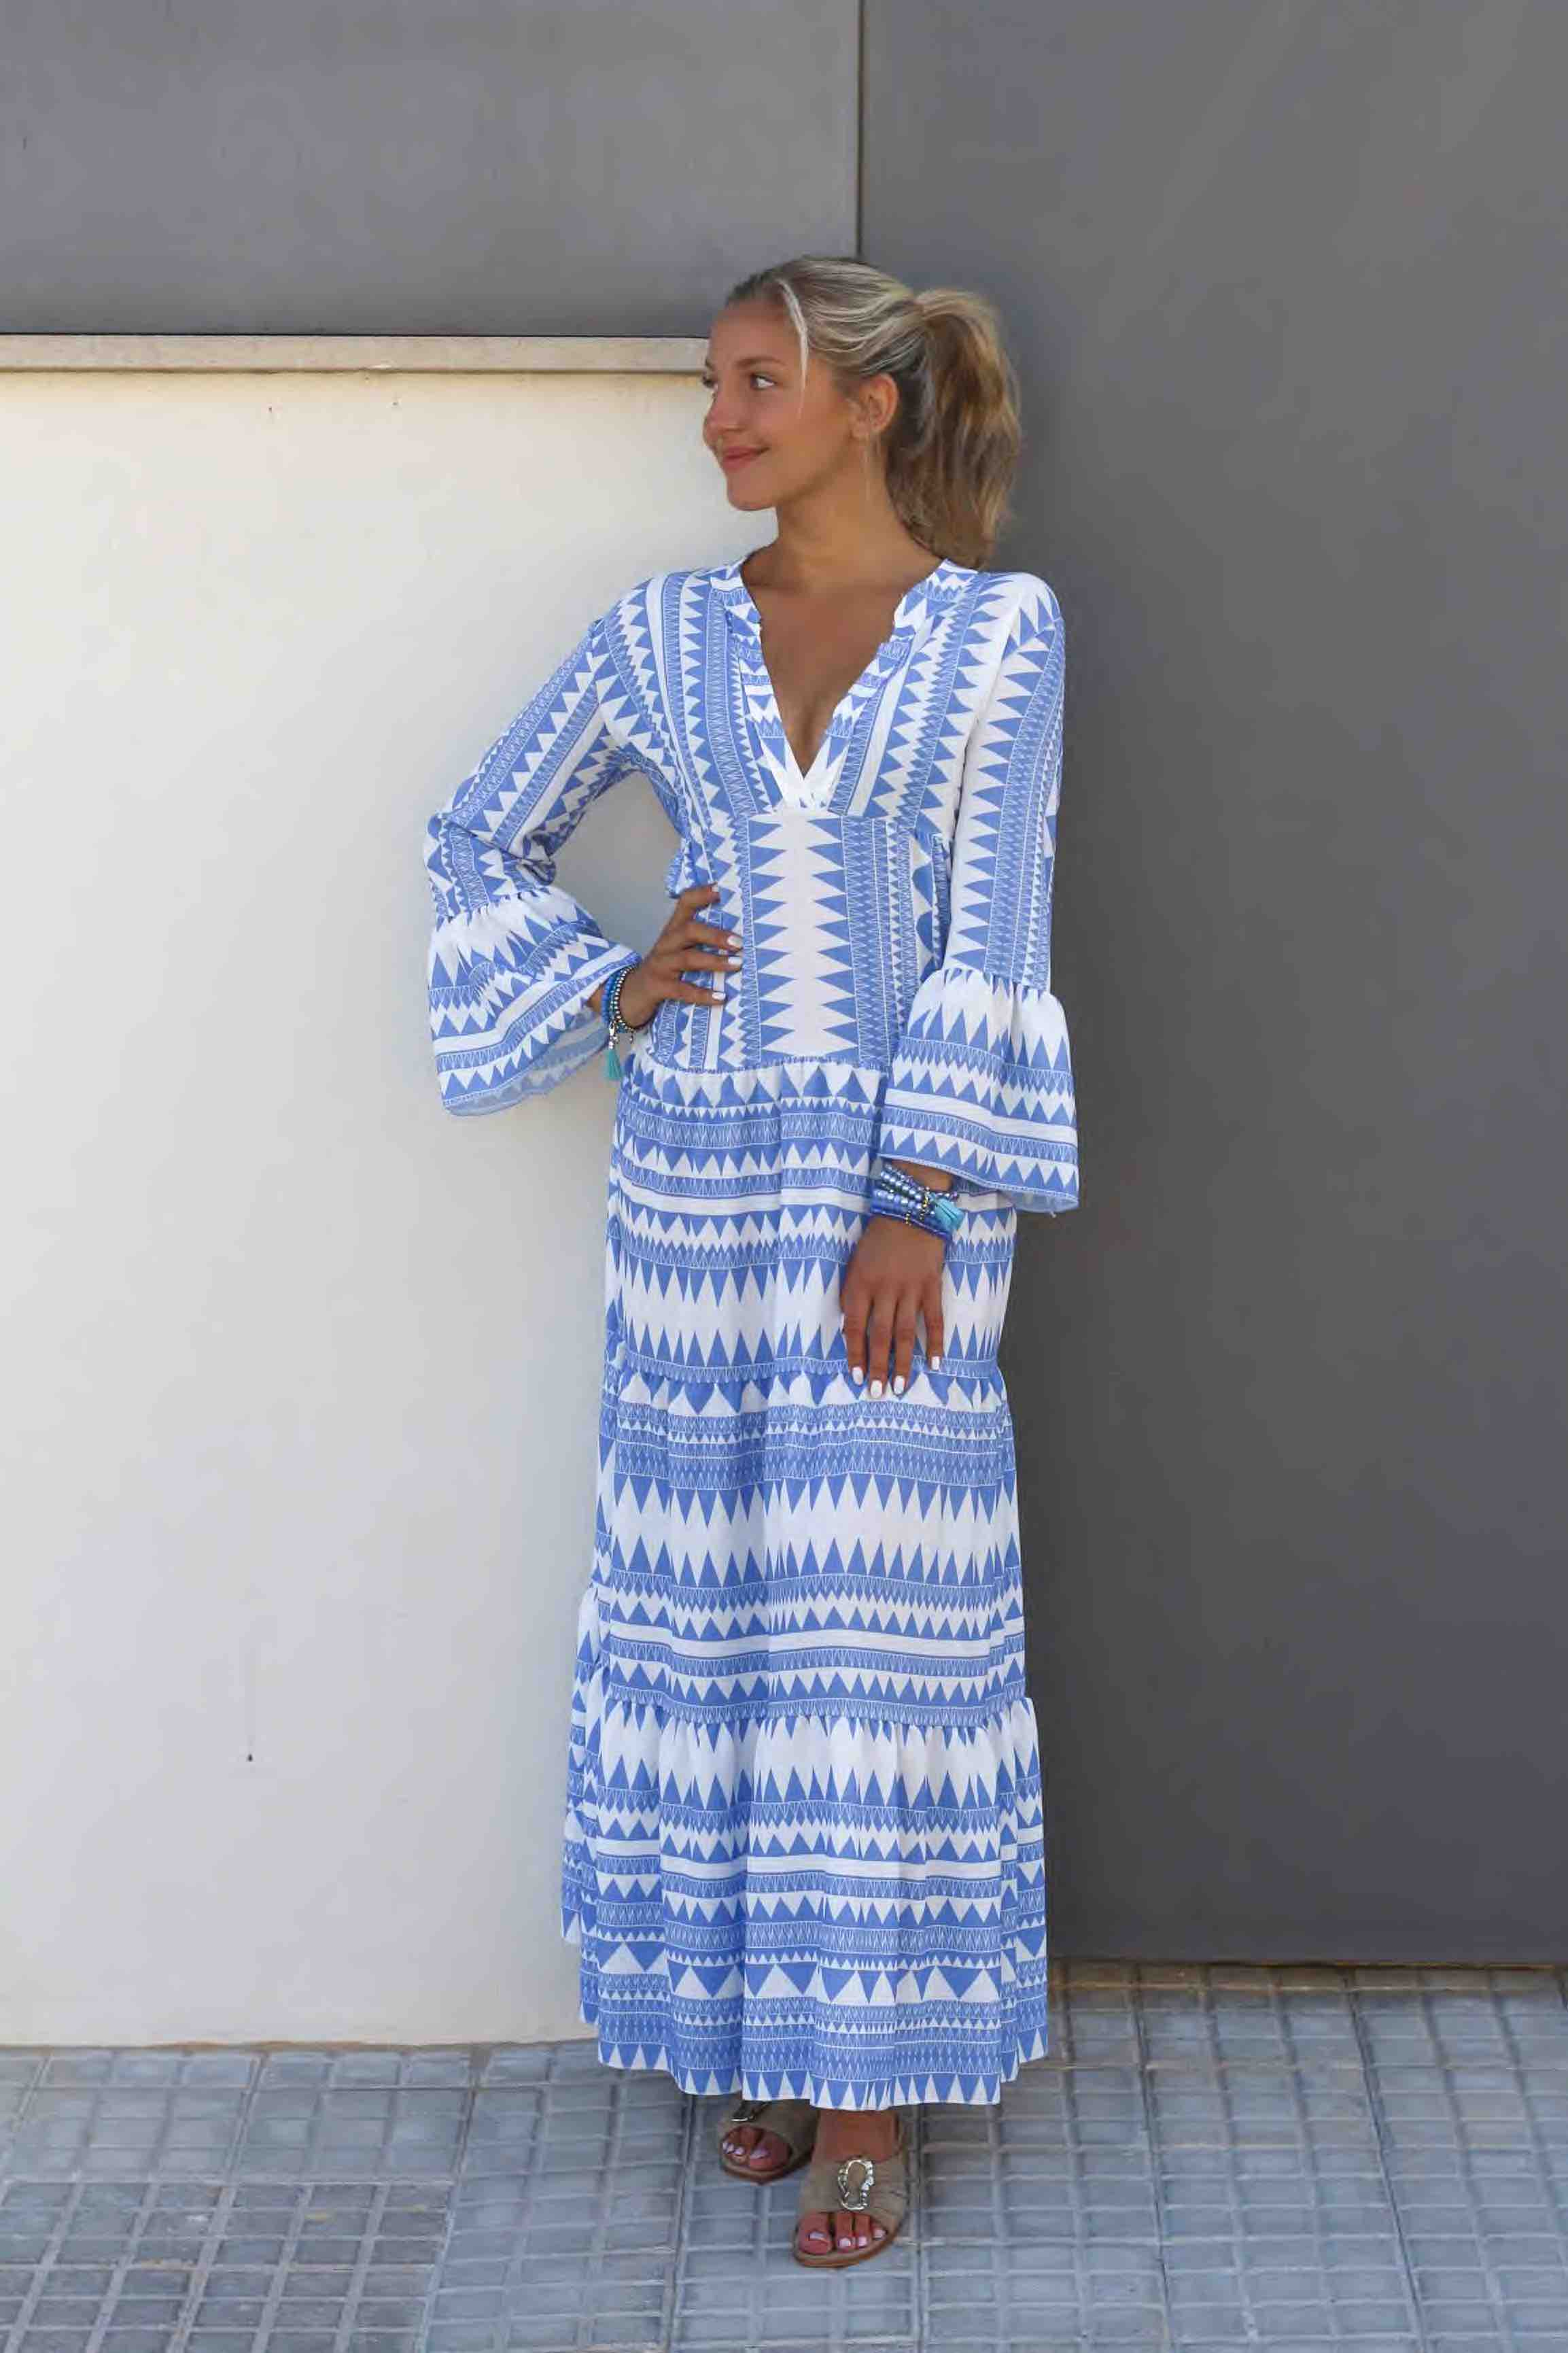 Amelie Kleid Blau Weiss Maxi I Miss Shophie London